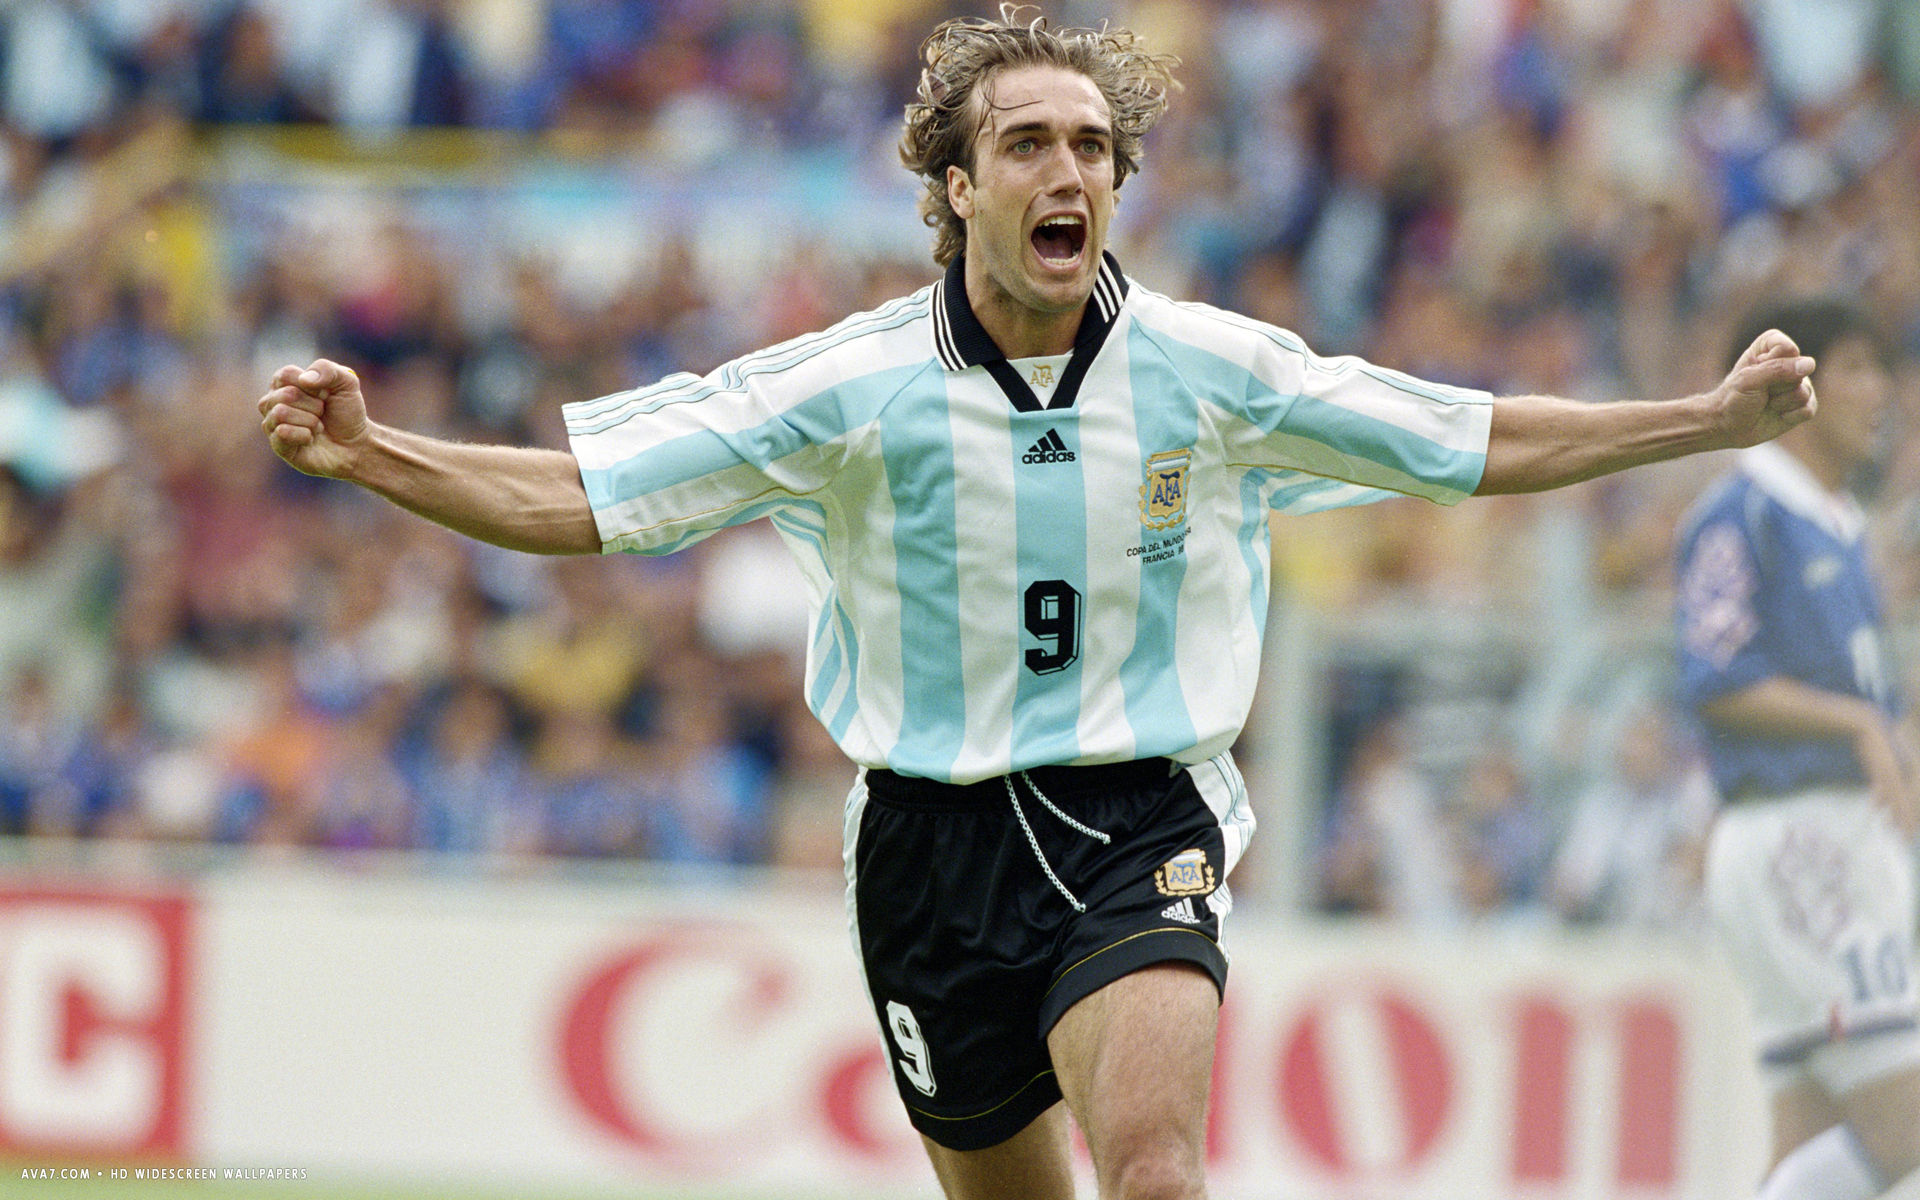 3d Wallpaper Widescreen Gabriel Batistuta Football Player Hd Widescreen Wallpaper